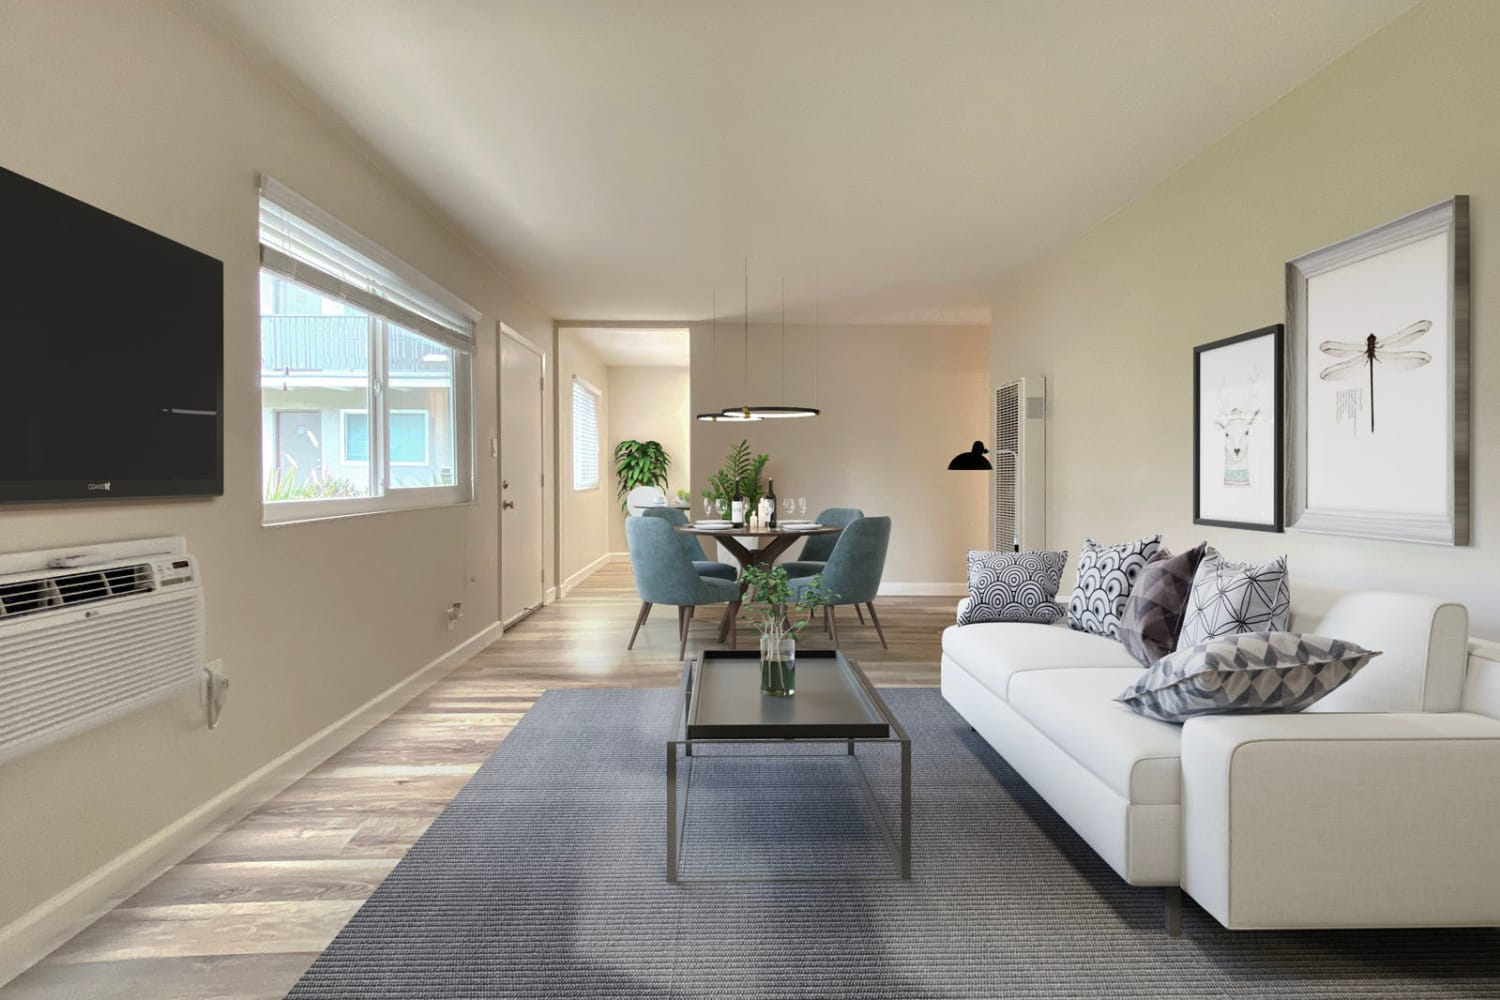 Modern furnishings and large bay windows in a model apartment's open-concept living space at Pleasanton Heights in Pleasanton, California